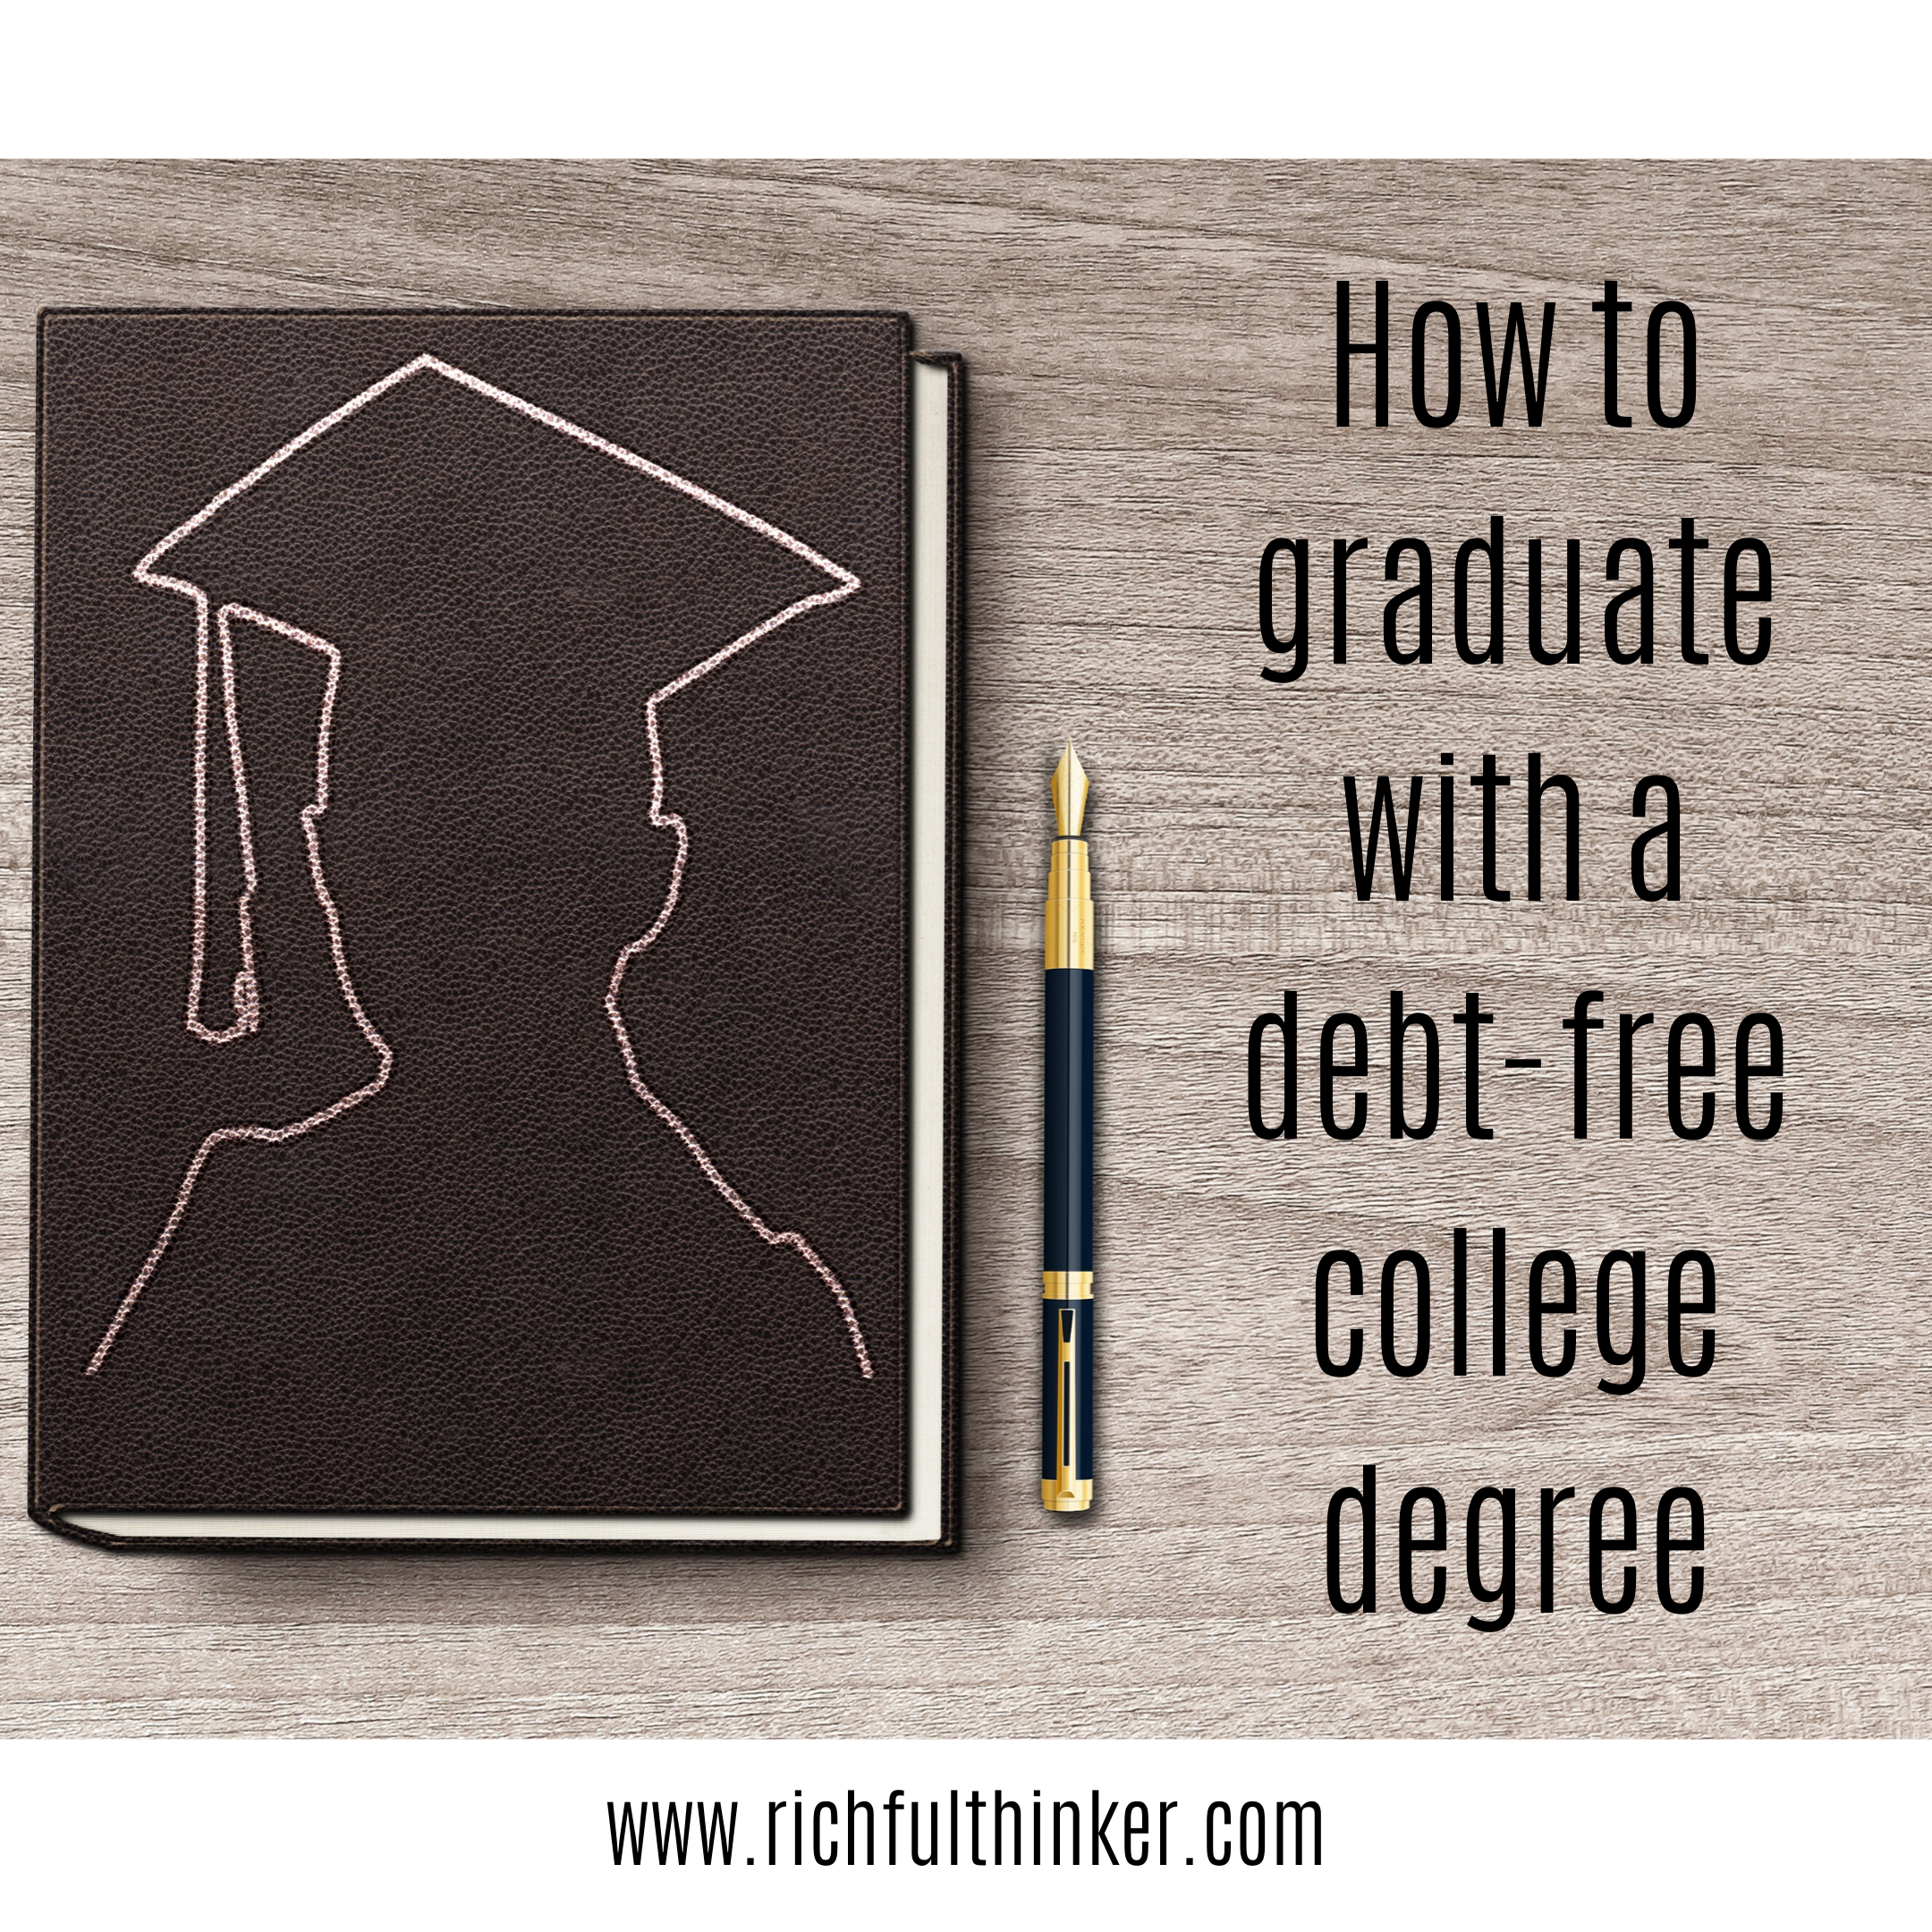 How to graduate with a debt-free college degree